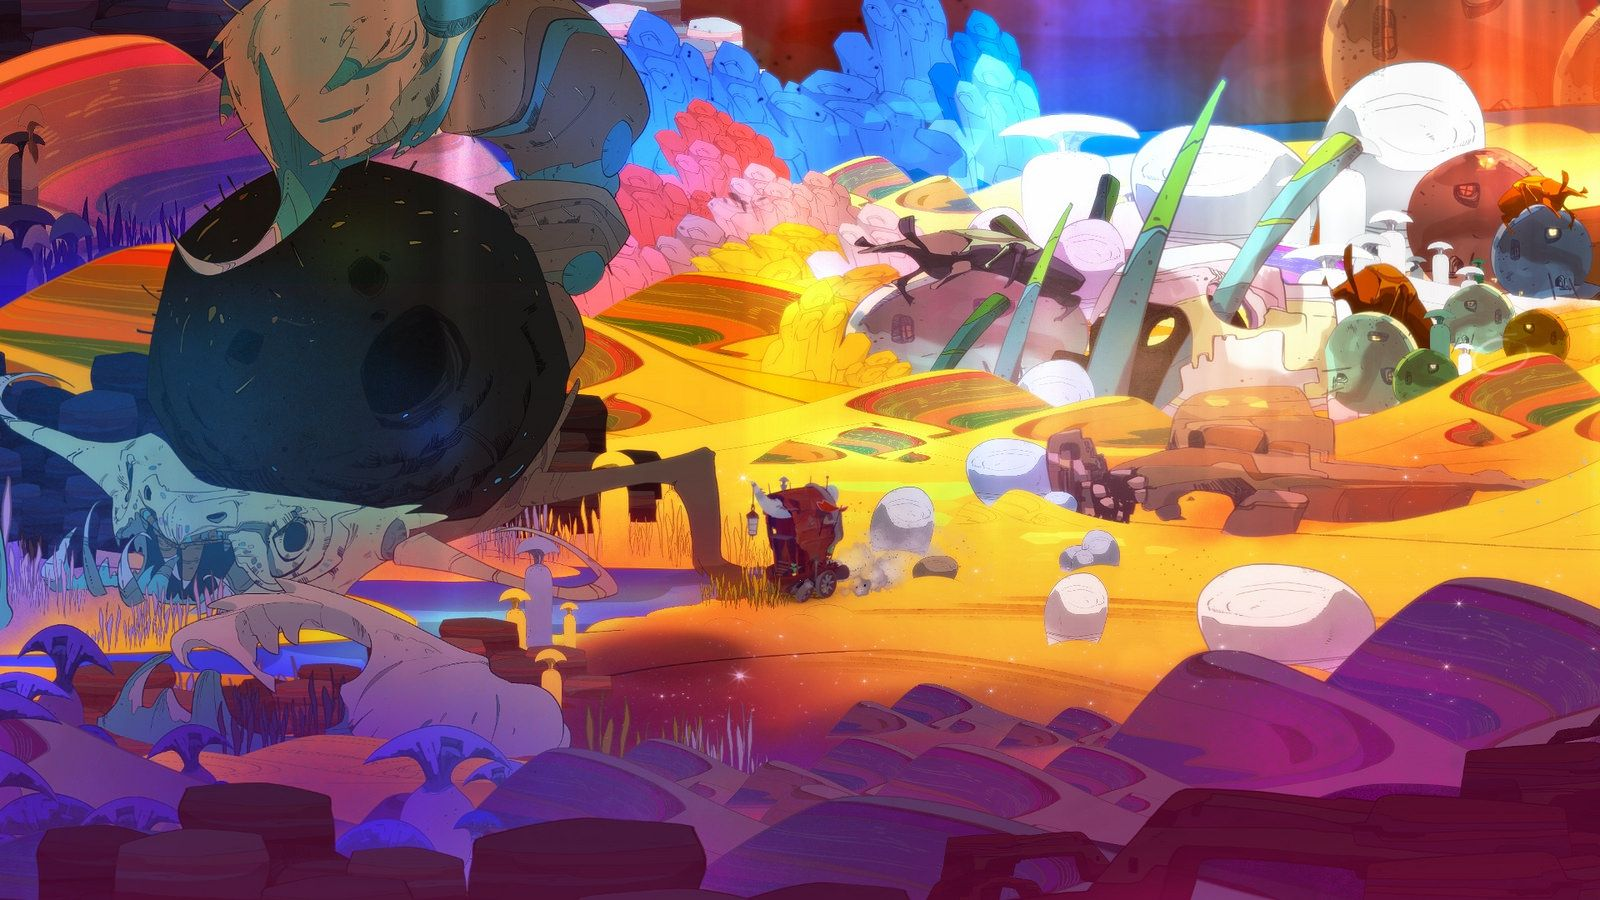 'bastion' Studio's 'pyre' Will Be Exclusive To Ps4 And Pc July 25th